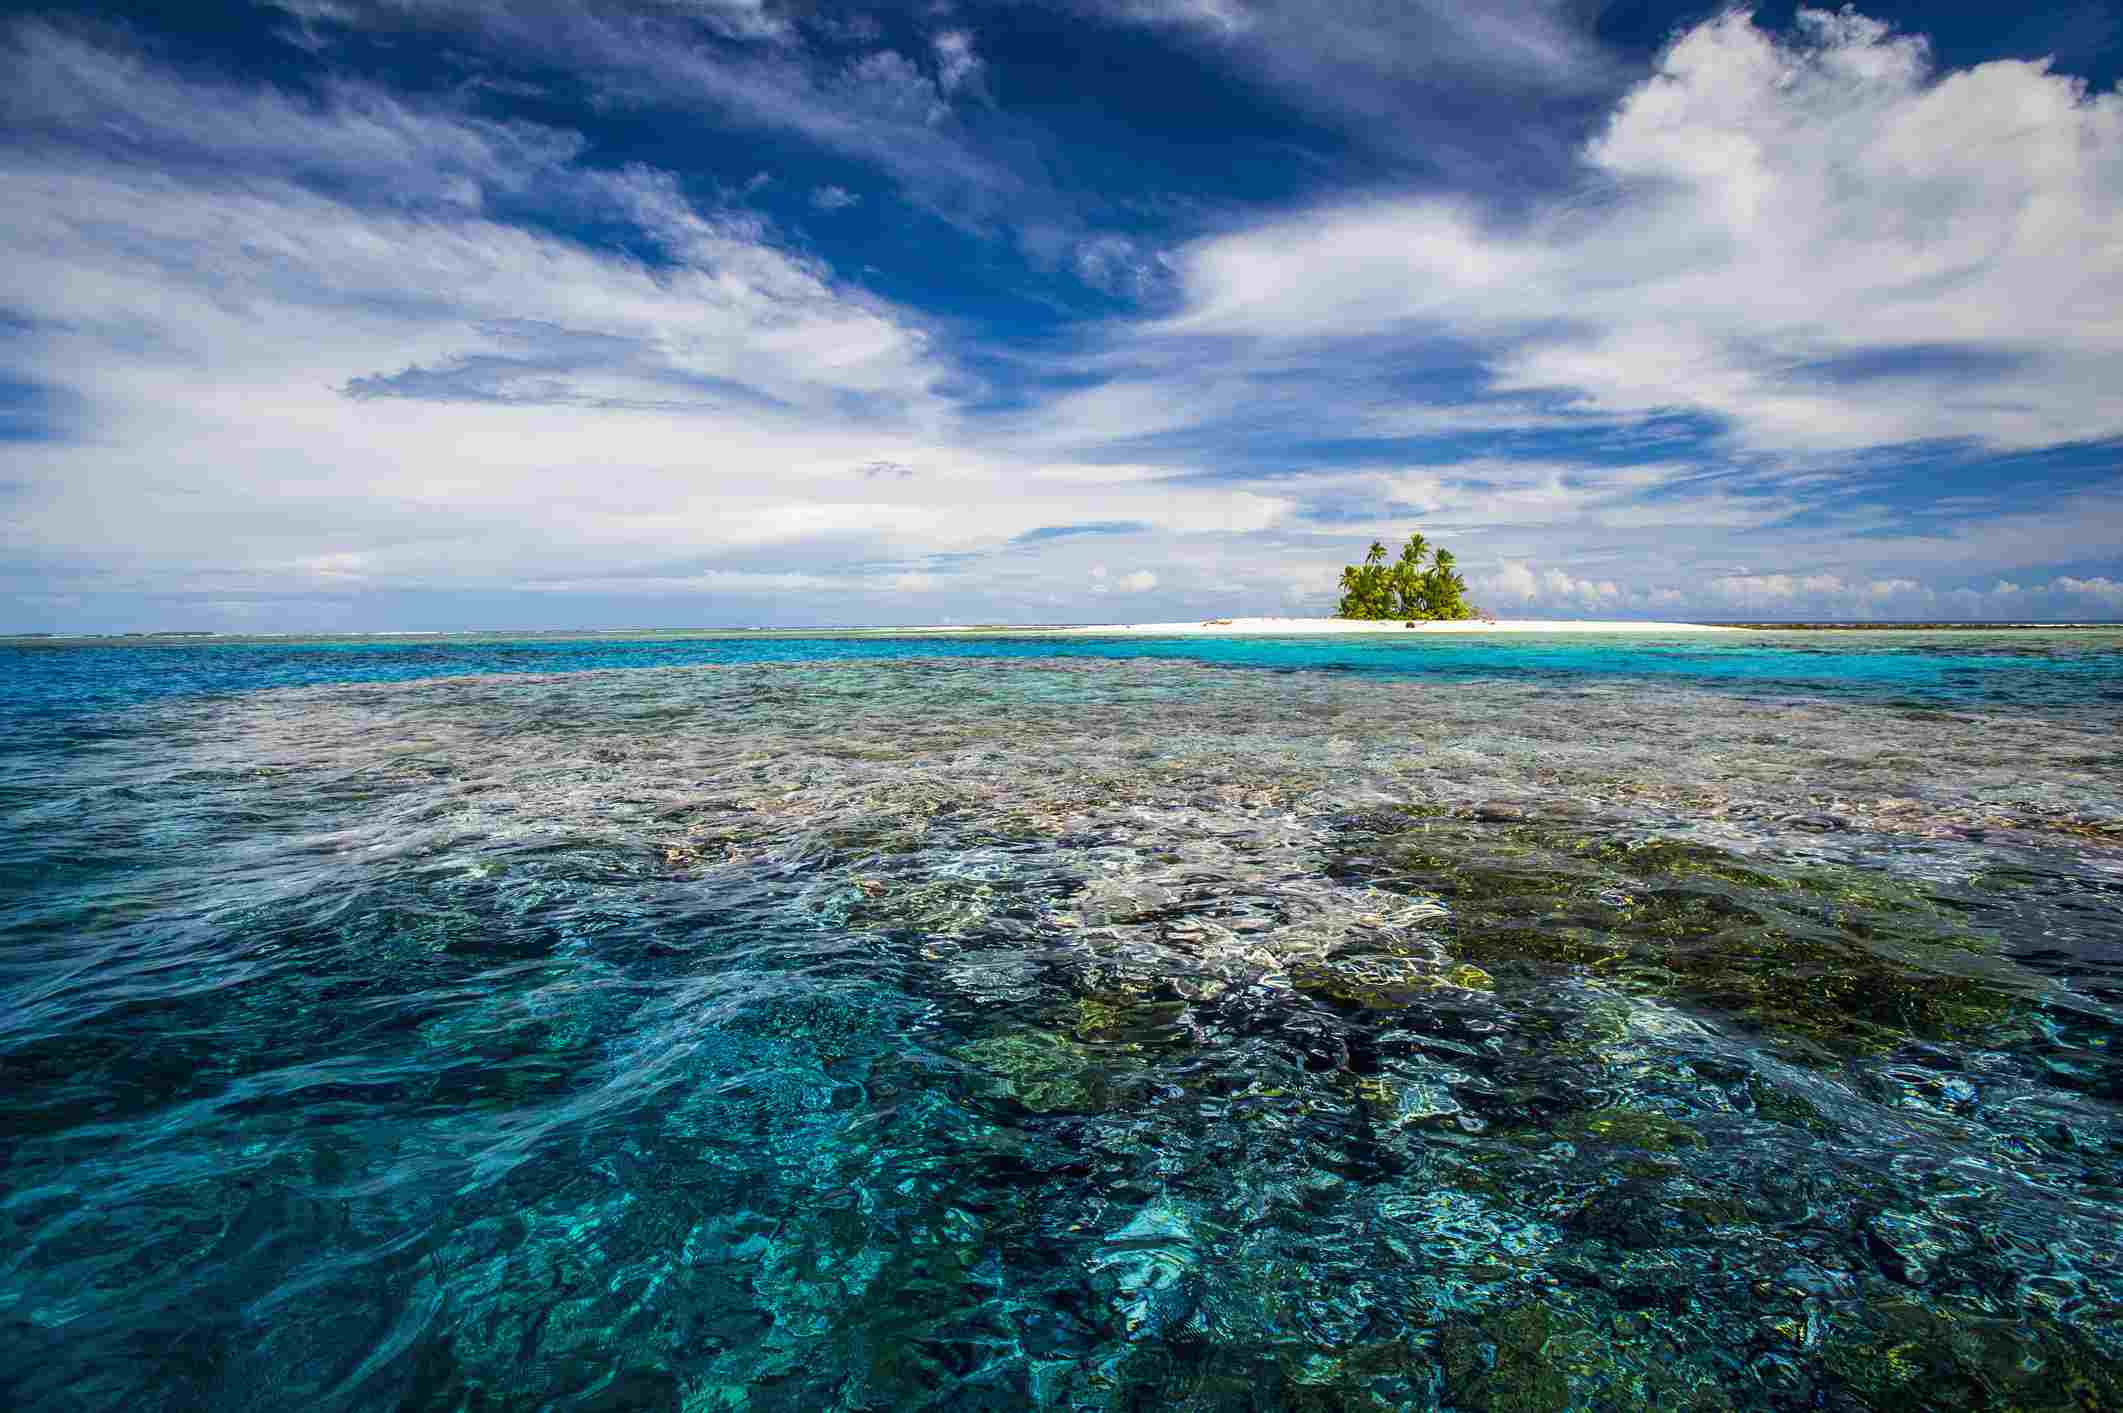 An island that forms part of the marine park, near the Tuvalu mainland